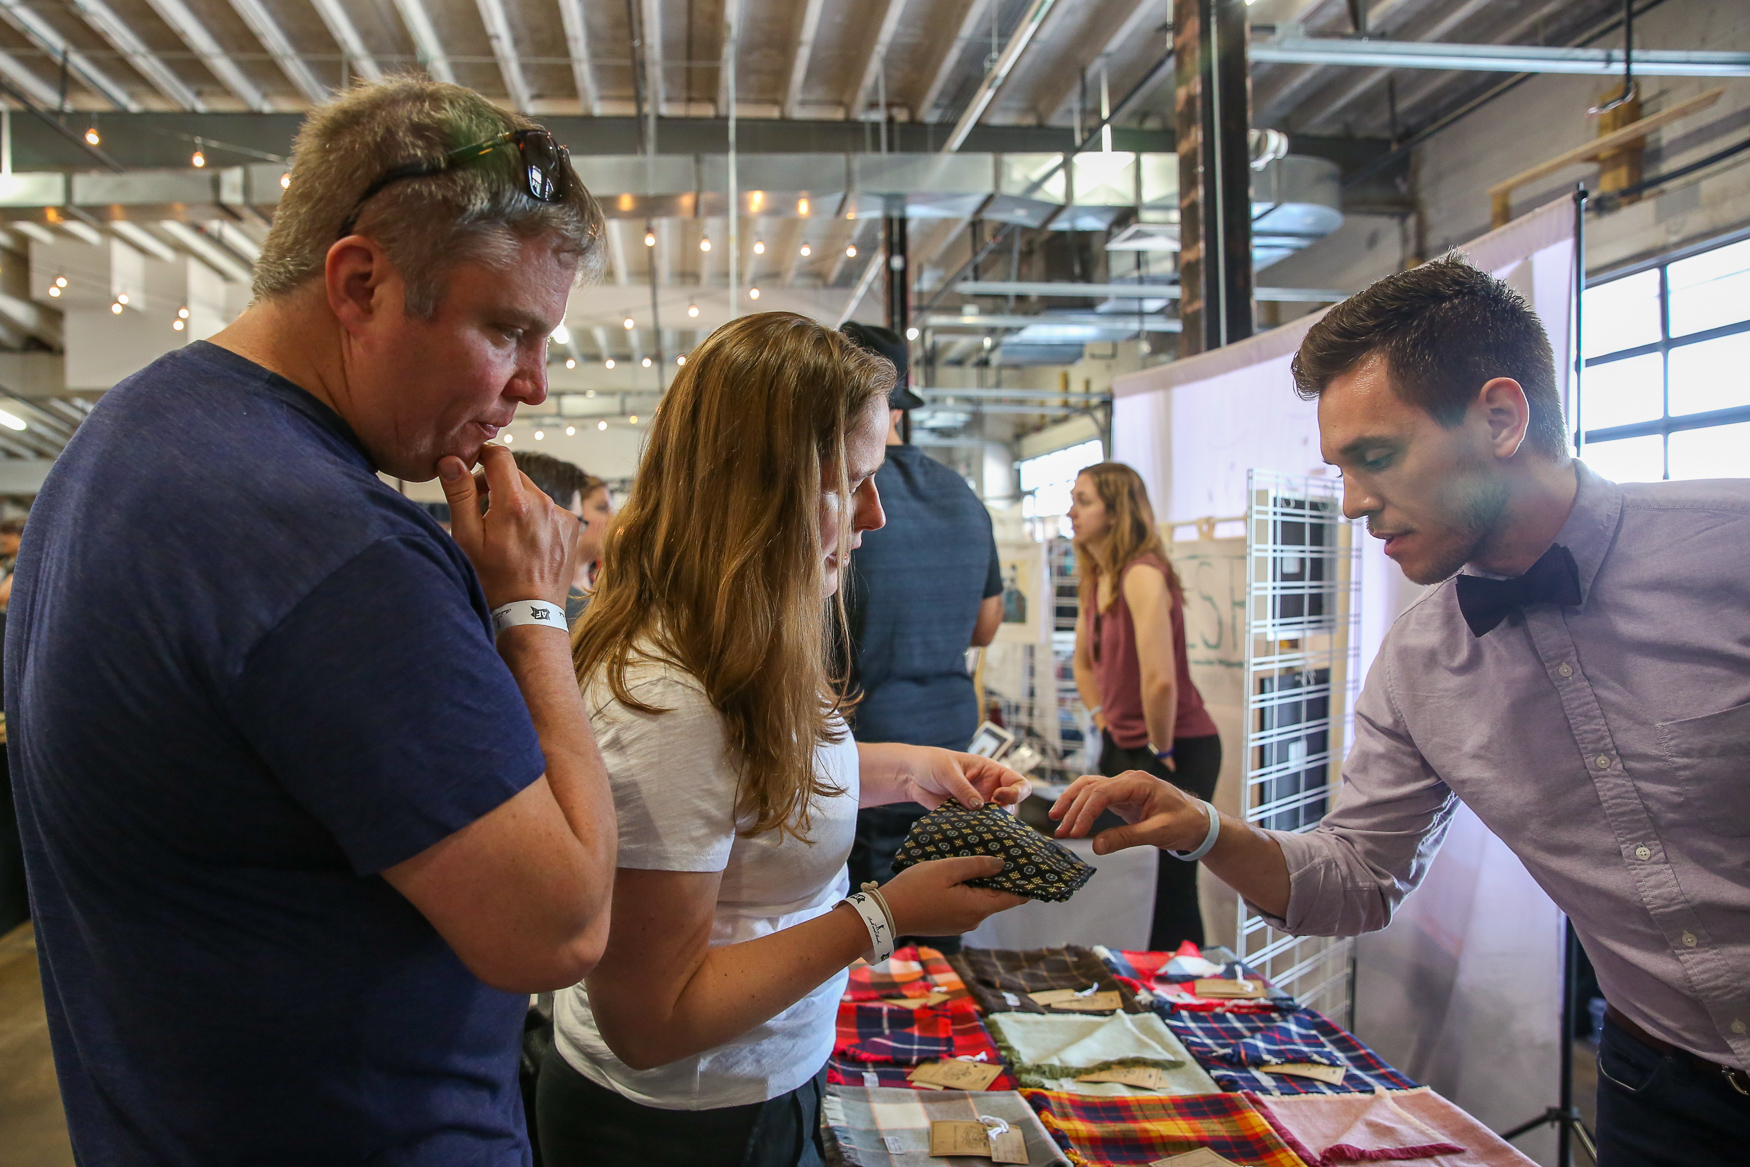 The American Field Pop-Up features some of the best artisans in the country and it's at Union Market this weekend. Dozens of vendors are offering wares from handcrafted jewelry to small-batch foods. The pop-up will last through the weekend - just in time to buy a last minute Mother's Day gift.{ }(Amanda Andrade-Rhoades/DC Refined)